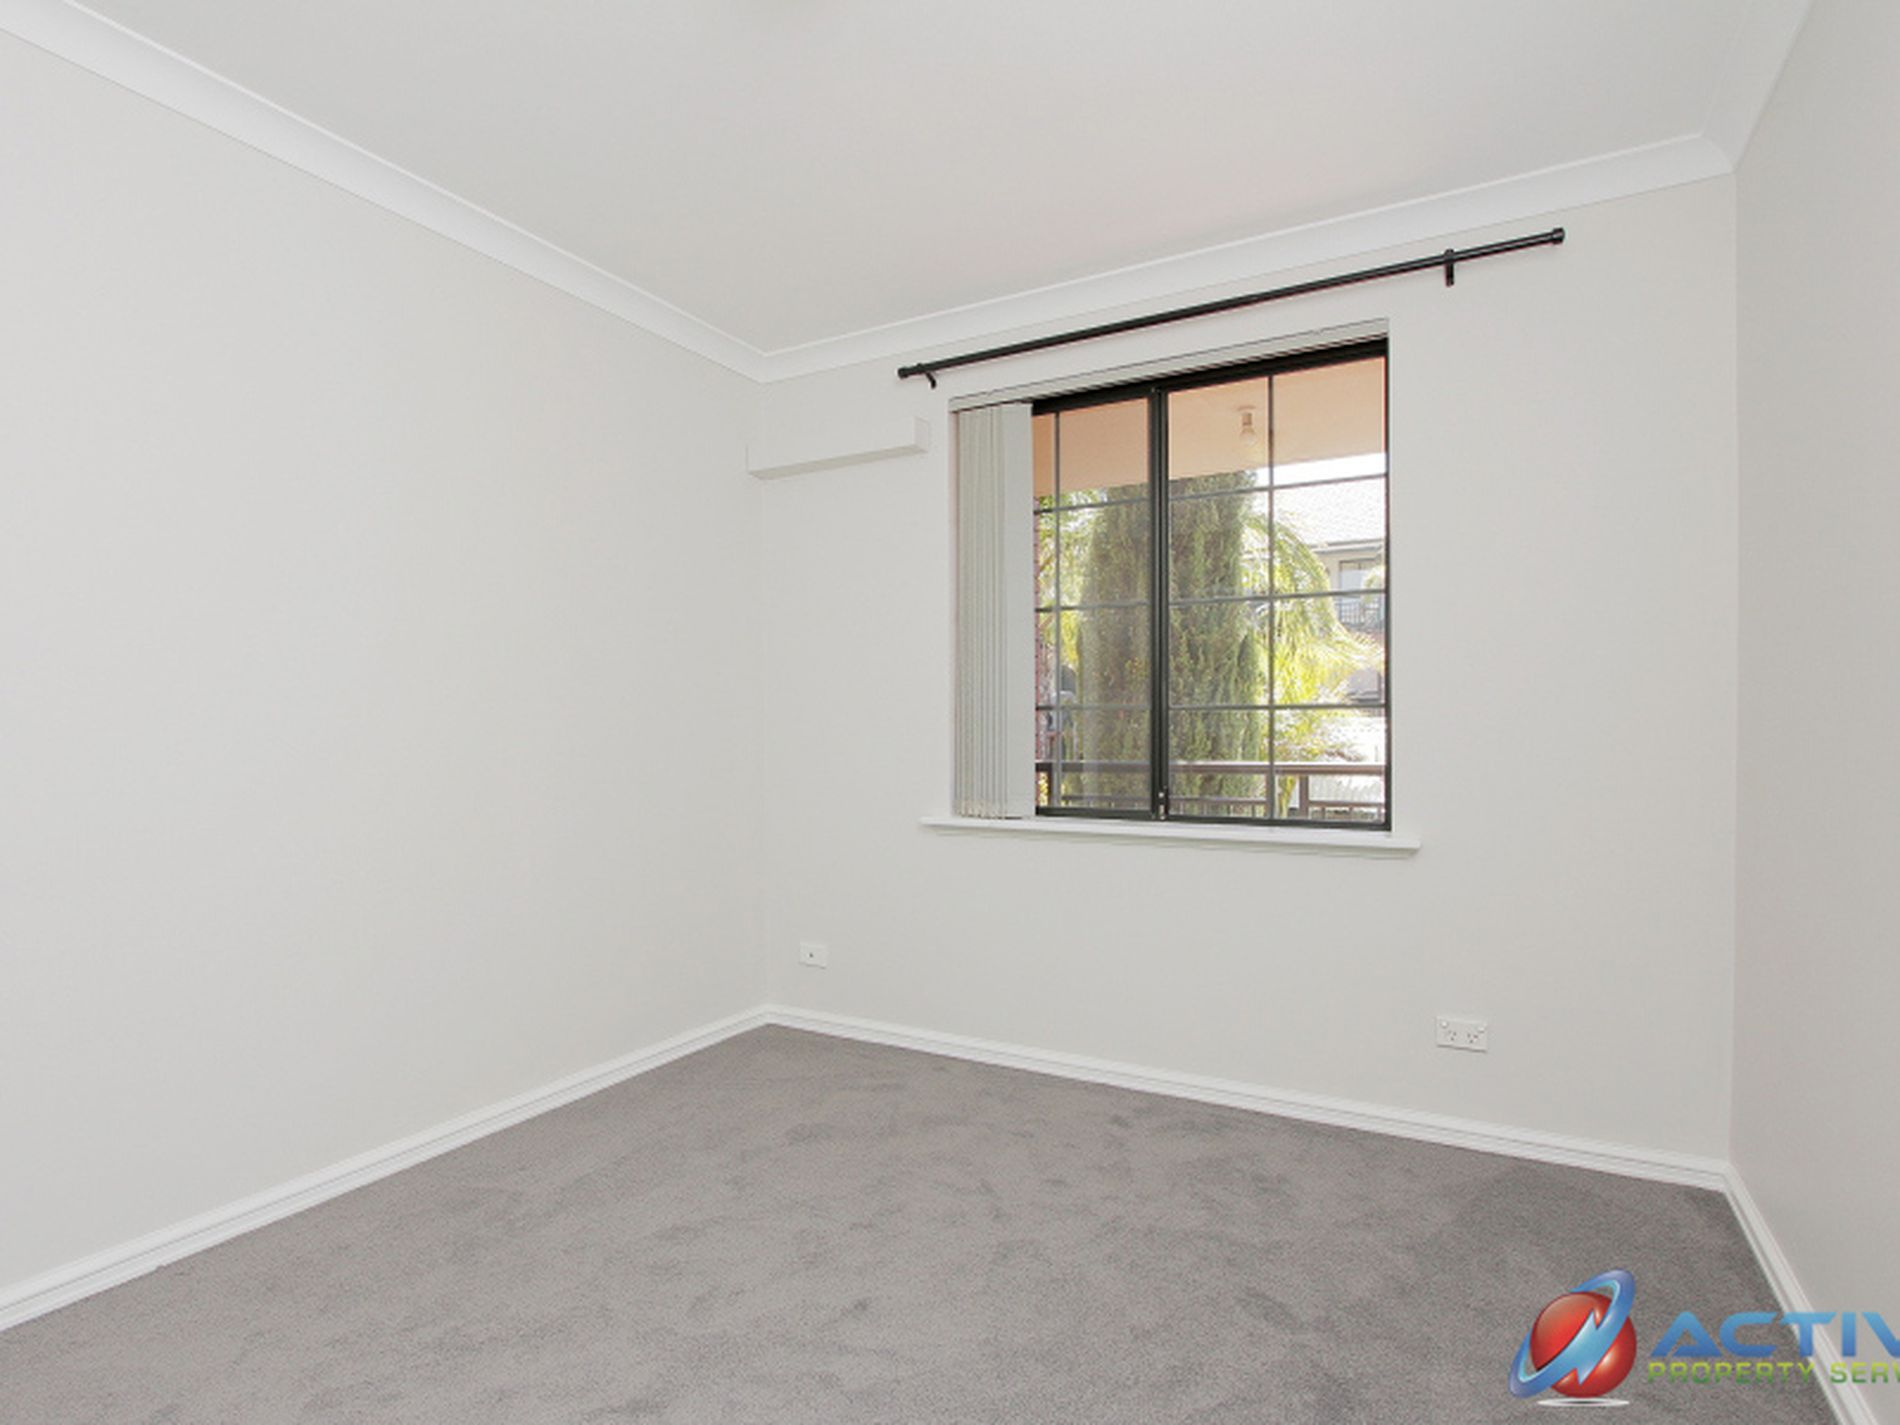 41 / 141 Fitzgerald Street, West Perth